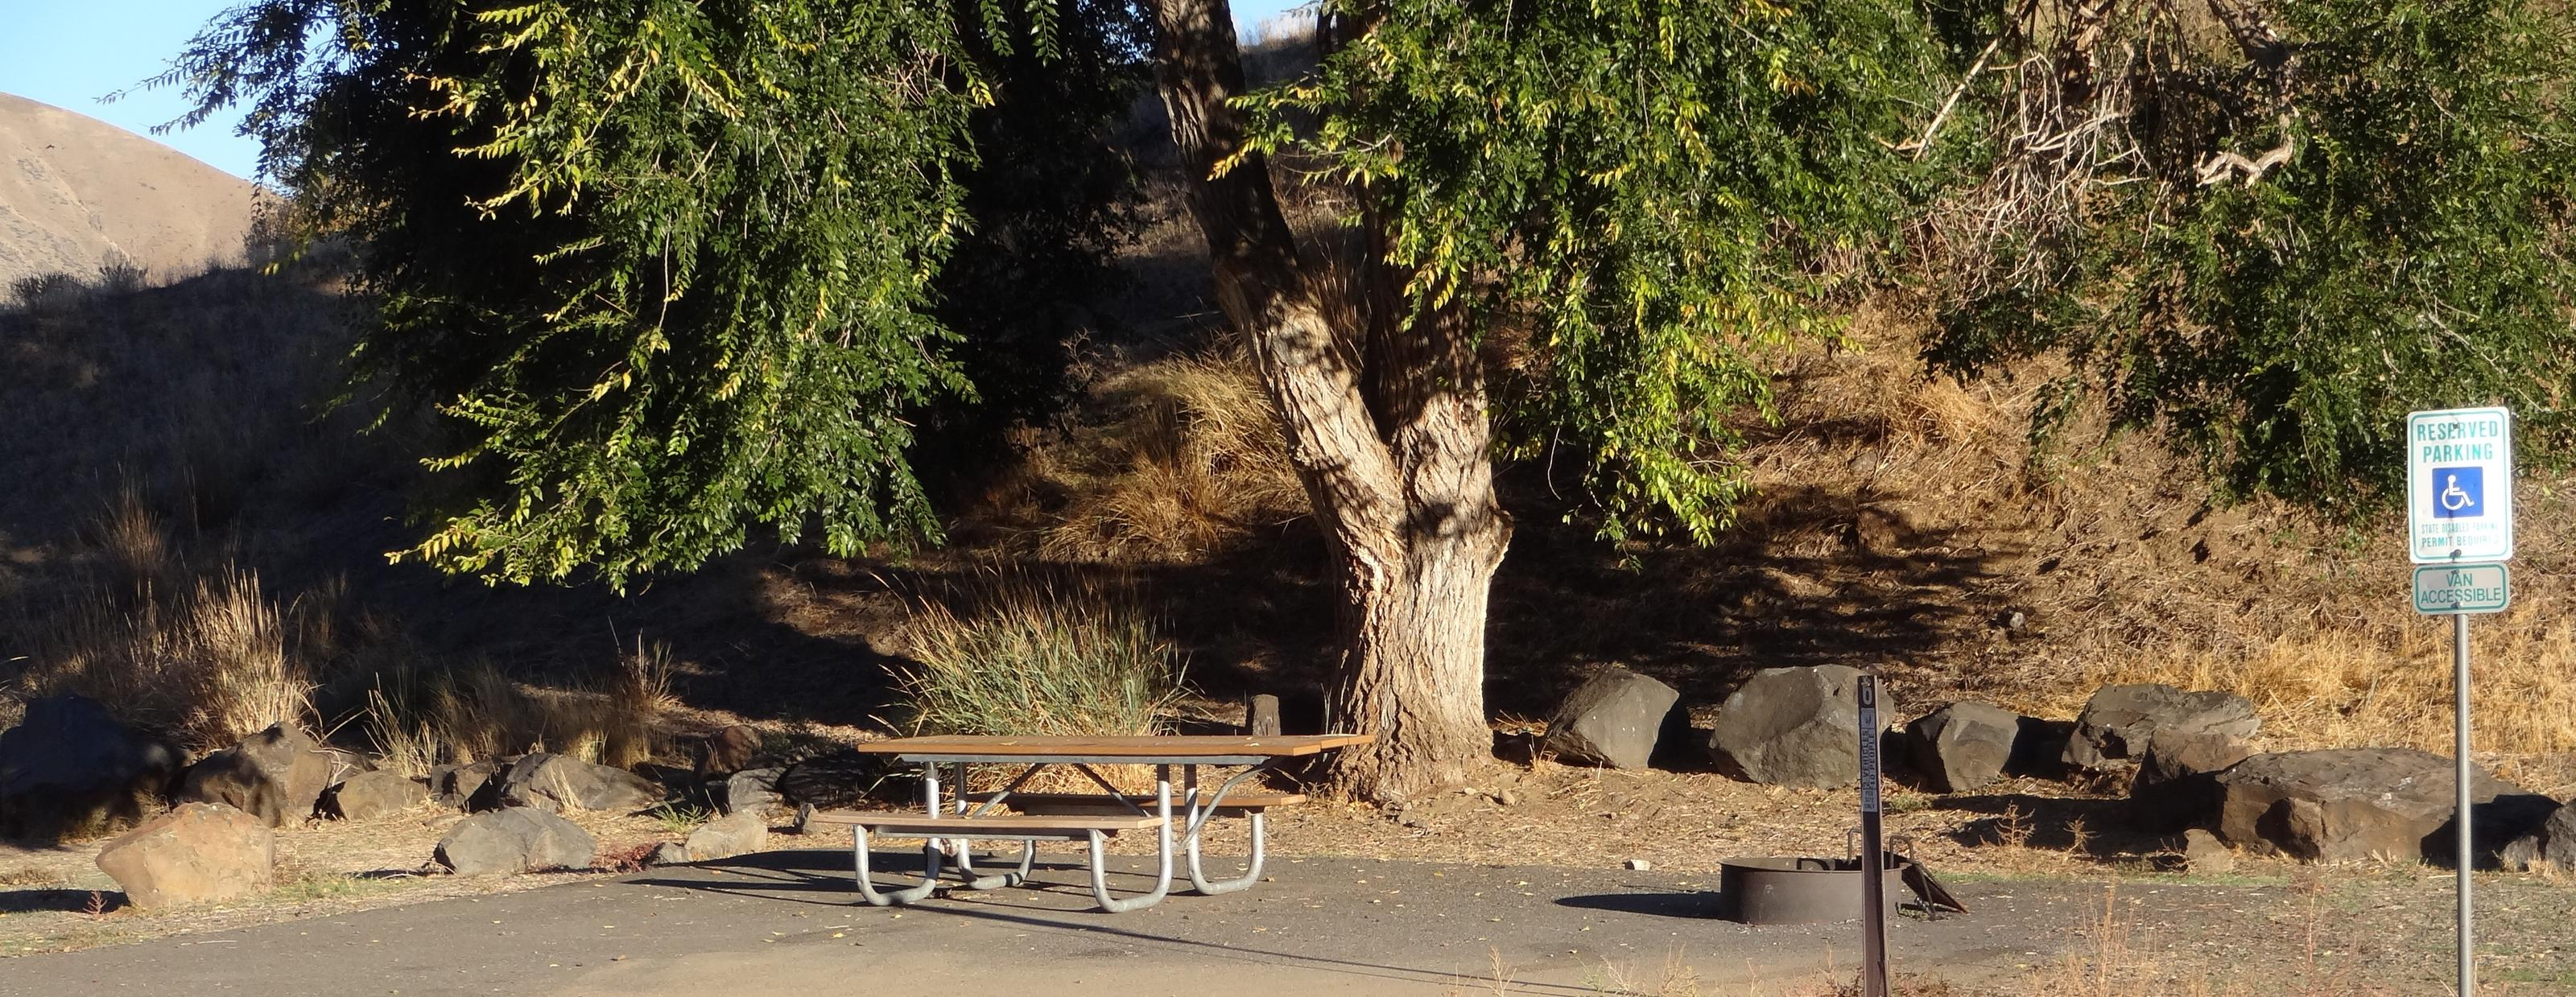 Parking spot, picnic table and fire ring at Lmuma Creek Campsite #6Lmuma Creek campsite #6